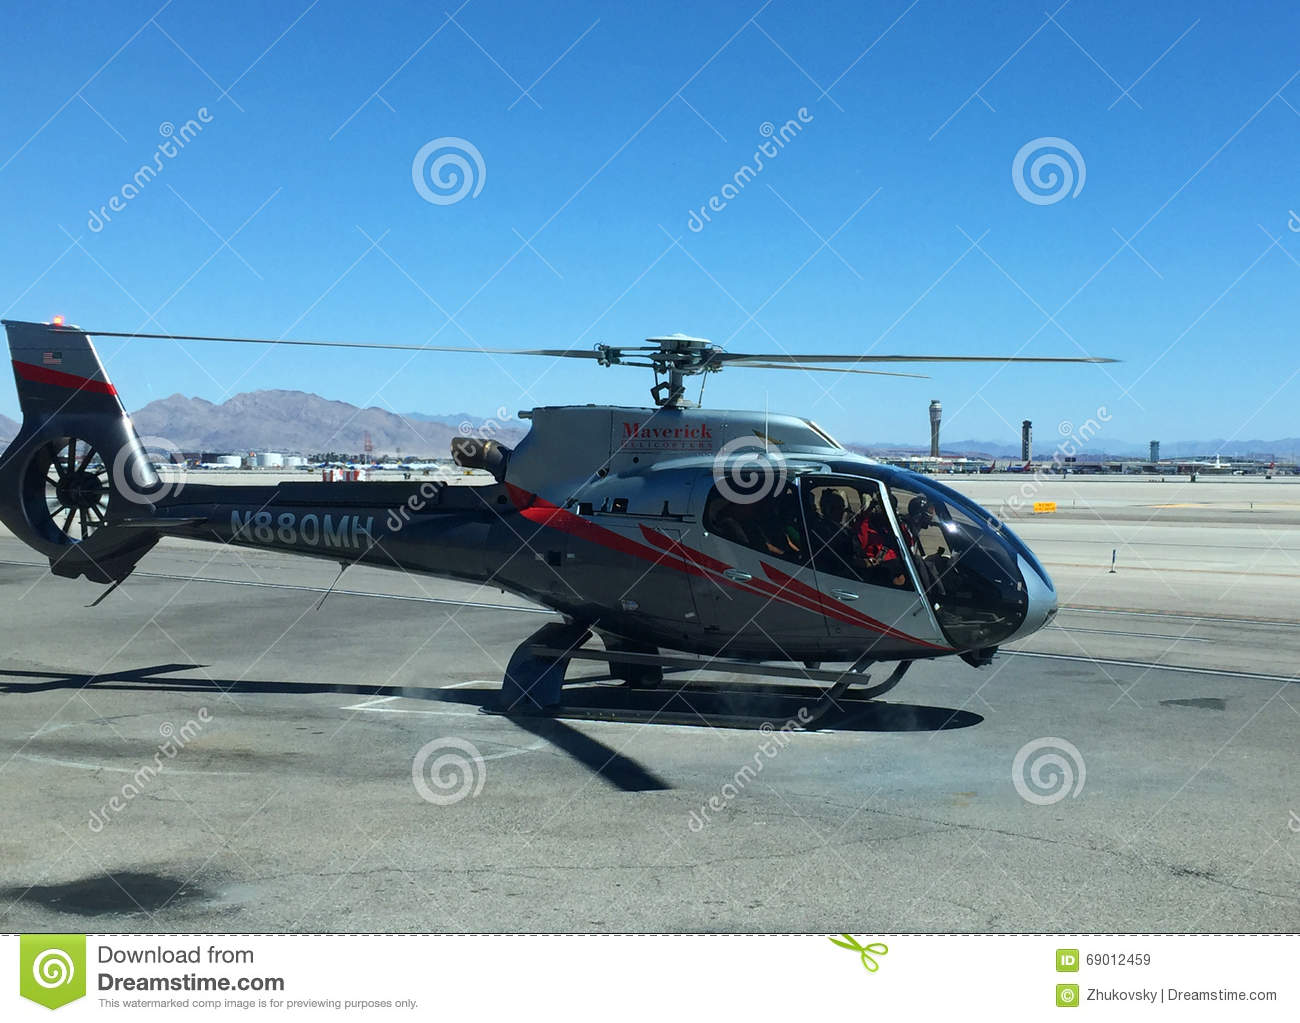 grand canyon helicopter tour prices with Editorial Stock Image Maverick Airbus Helicopter Ec Takes Off Las Vegas Airport Grand Canyon Tour Nevada March Image69012459 on Lodging Grand Canyon National Park as well Airwest2 in addition Editorial Stock Image Maverick Airbus Helicopter Ec Takes Off Las Vegas Airport Grand Canyon Tour Nevada March Image69012459 additionally Grand Canyon Visitor Center Has A Slideshare Account moreover Private Jet And Limo.